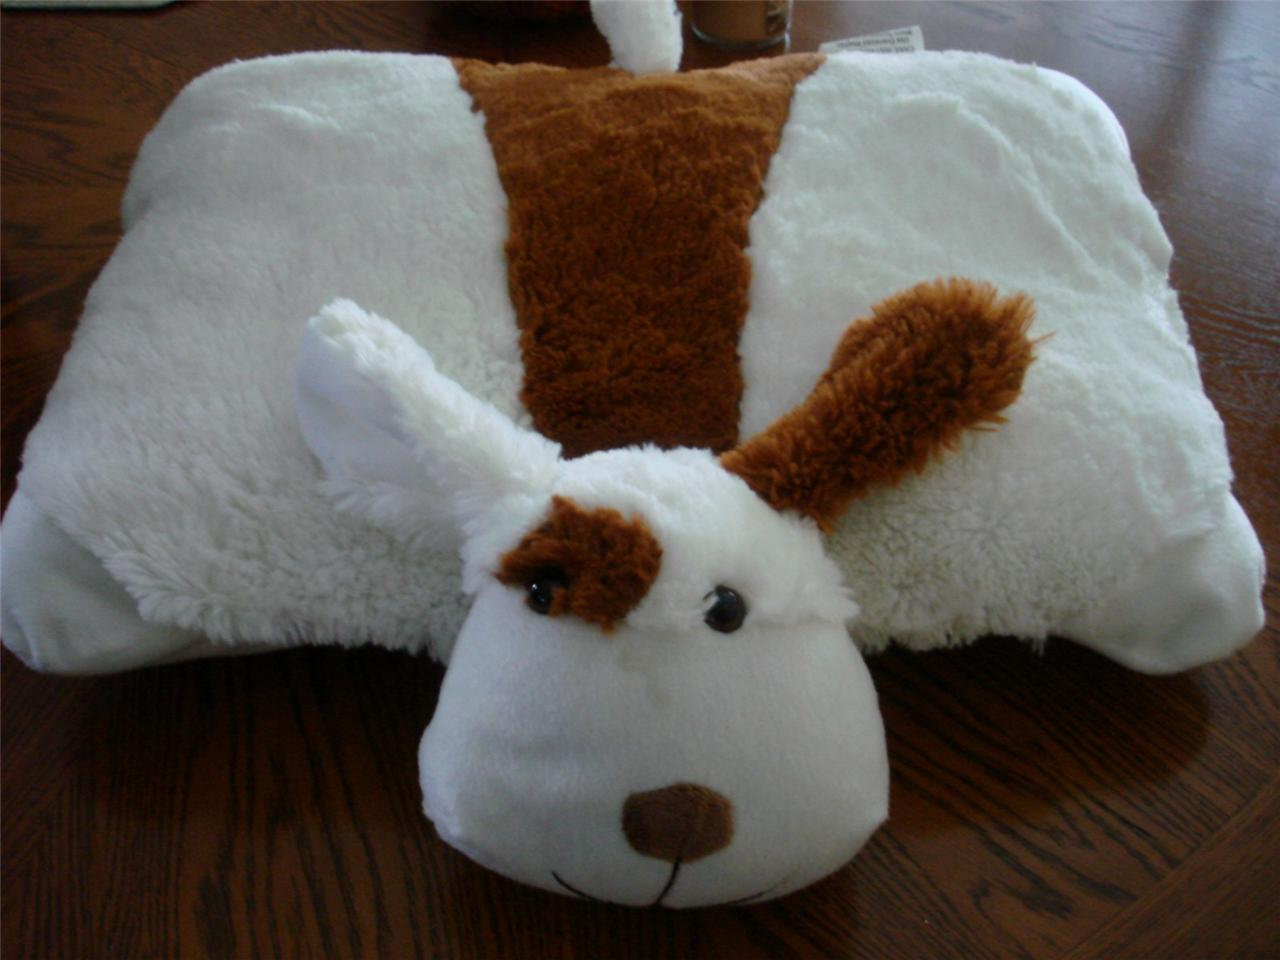 Stuffed Animal Dog Pillow : PUPPY DOG PILLOW CHUM PET STUFFED ANIMAL LARGE 18 PILLOW PAL eBay